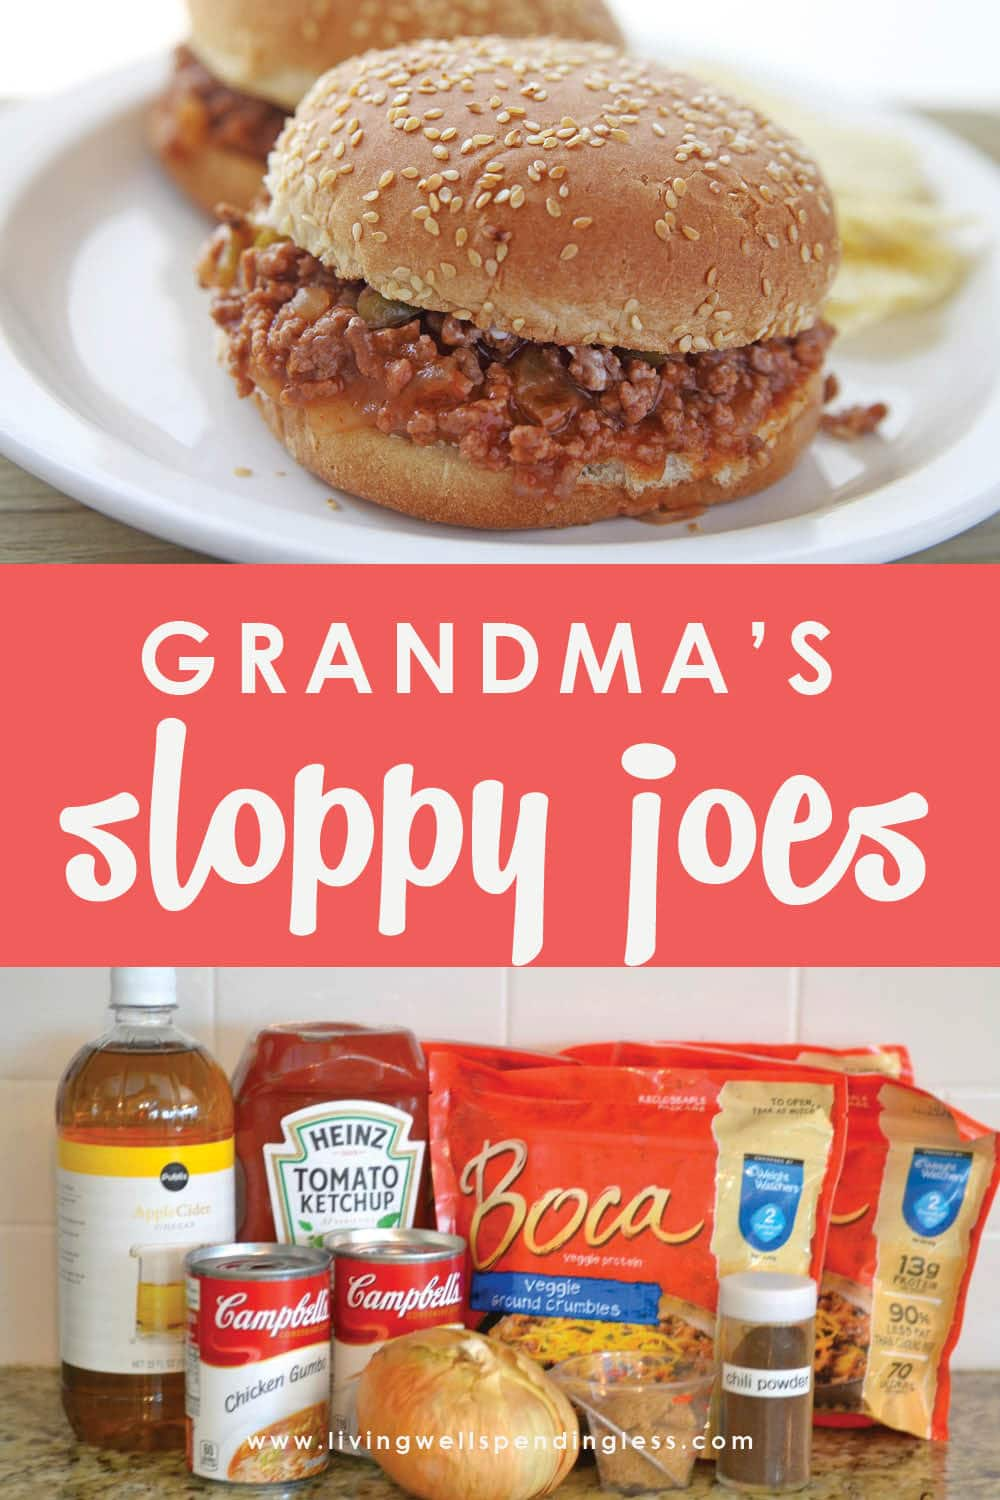 Need a new family favorite meal? This delicious recipe is straight out of my Grandmother's recipe box. Full of flavor, it whips up in minutes to serve a crowd and is freezer friendly too! It can also be made vegetarian, check it out! #vegetarian #easyrecipe #freezermeals #sloppyjoes